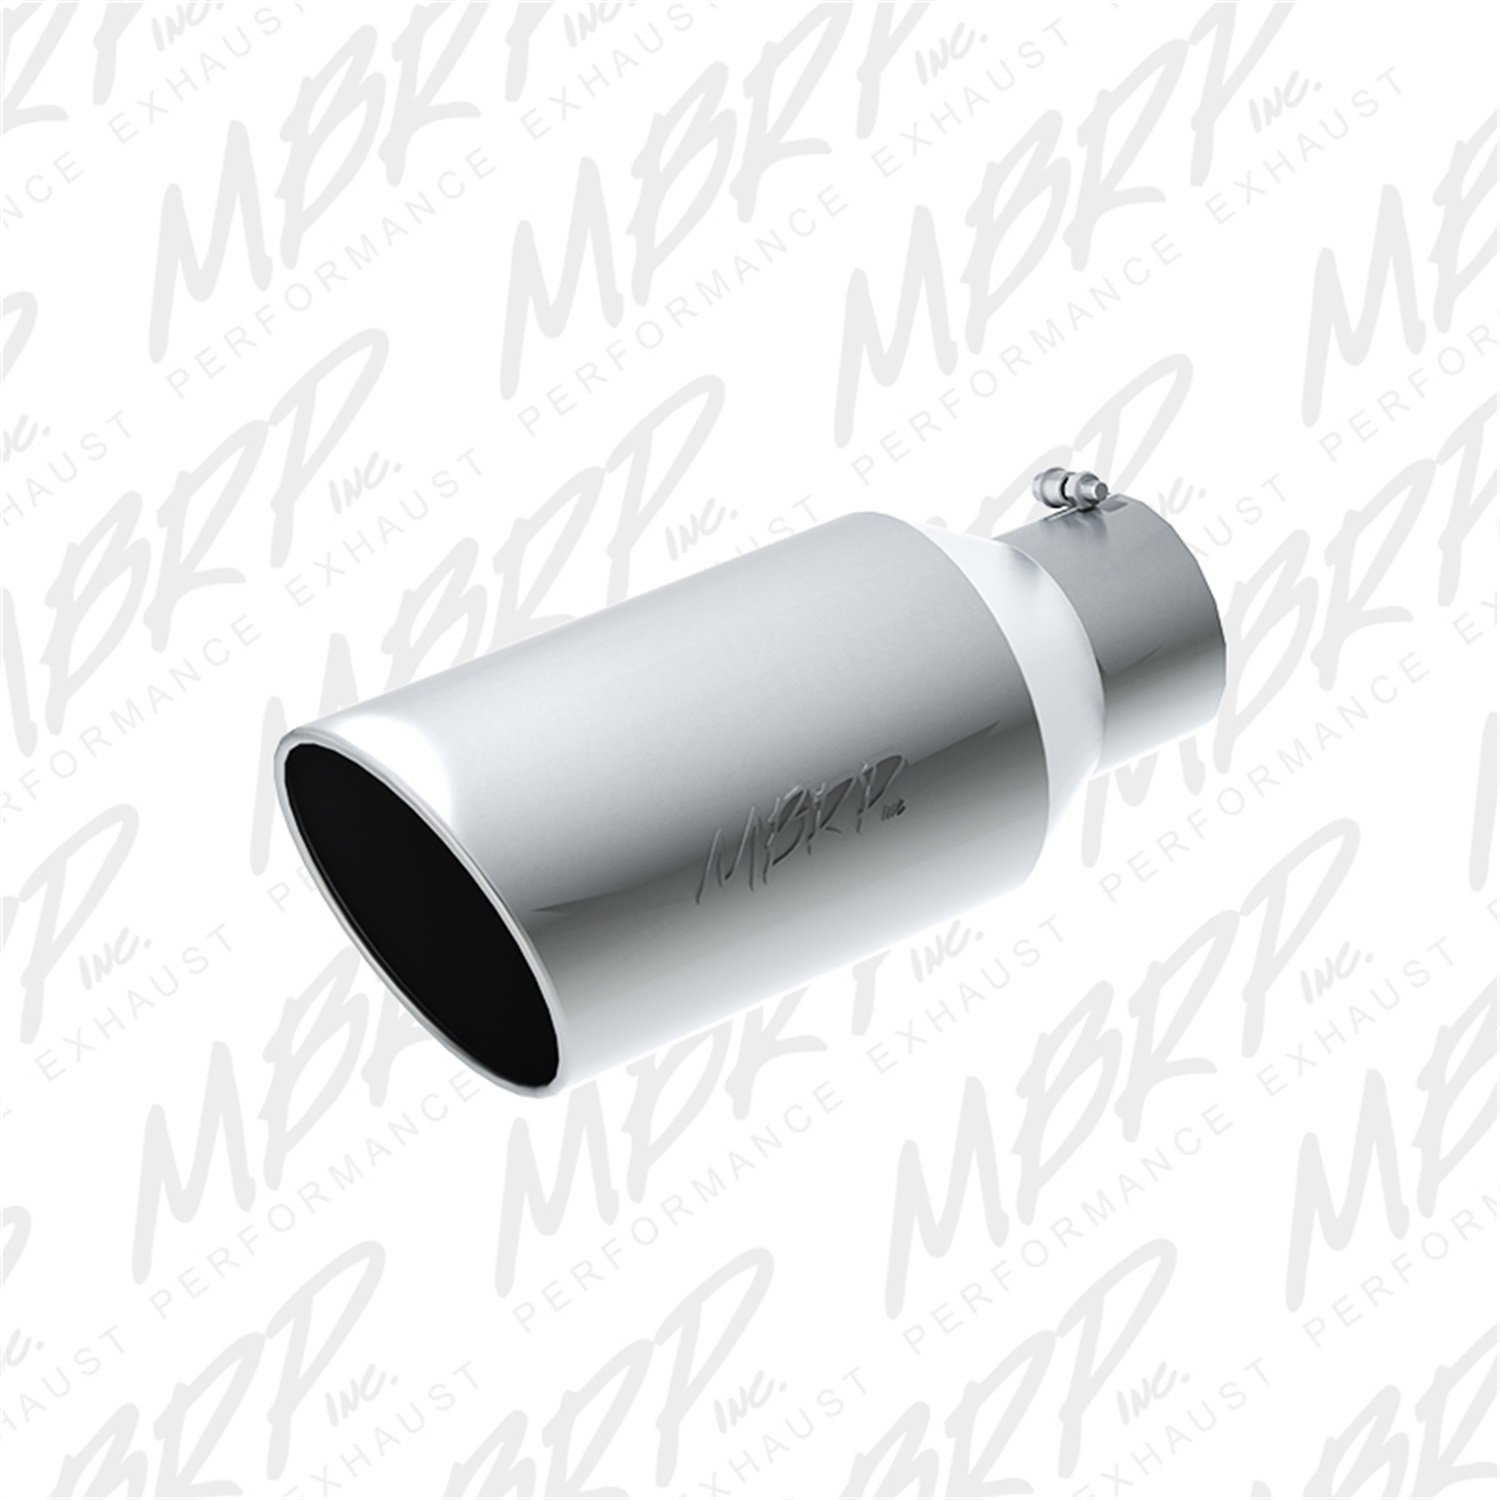 MBRP T5129 T304 Stainless Steel 5' Inlet 18' Length 8' Outer Diameter Rolled End Exhaust Tip